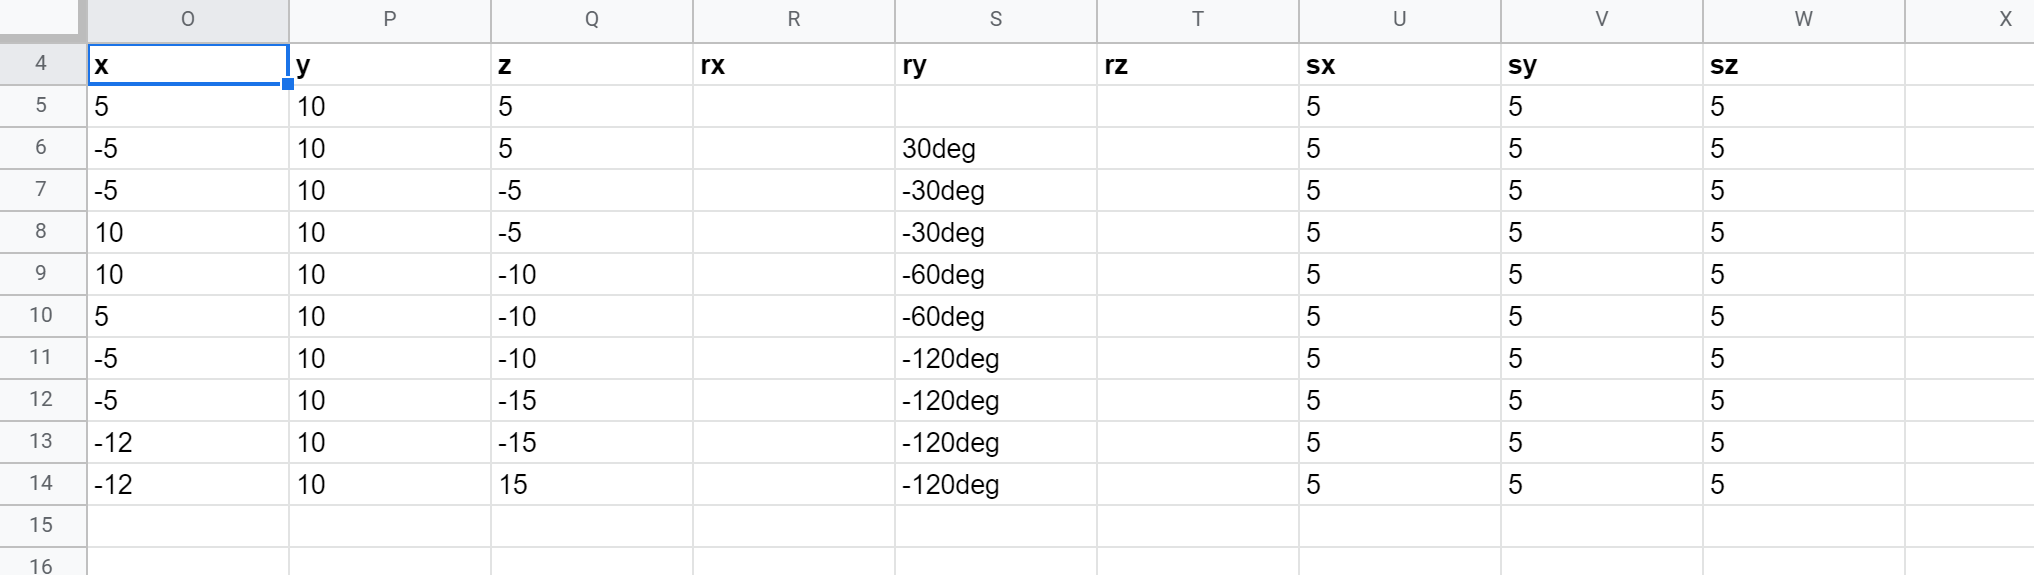 Sheets Organized Positions